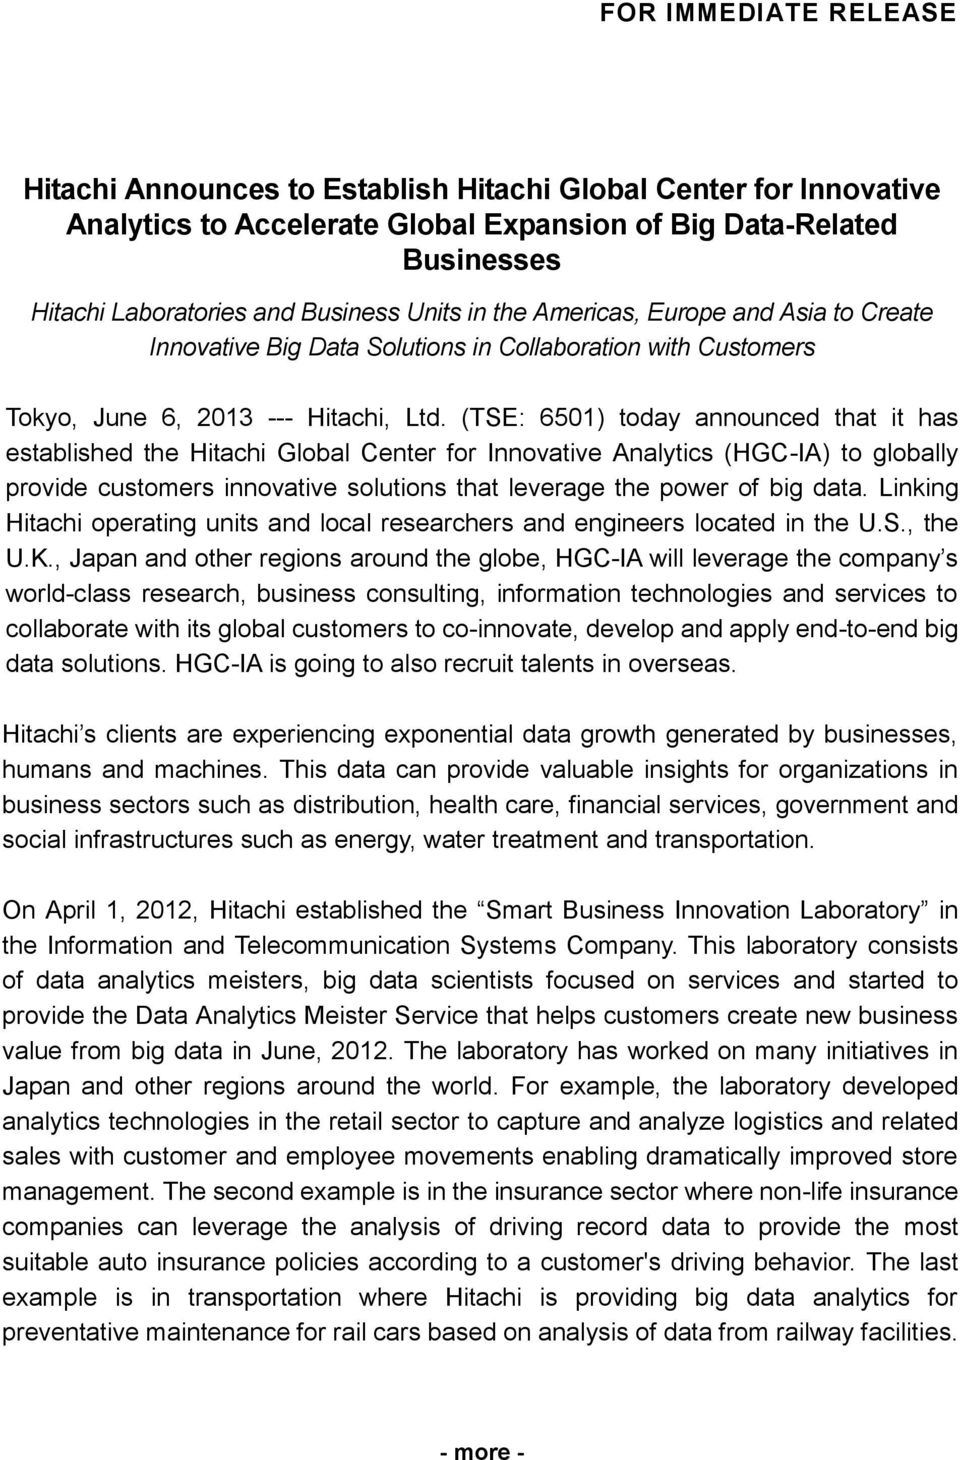 (TSE: 6501) today announced that it has established the Hitachi Global Center for Innovative Analytics (HGC-IA) to globally provide customers innovative solutions that leverage the power of big data.